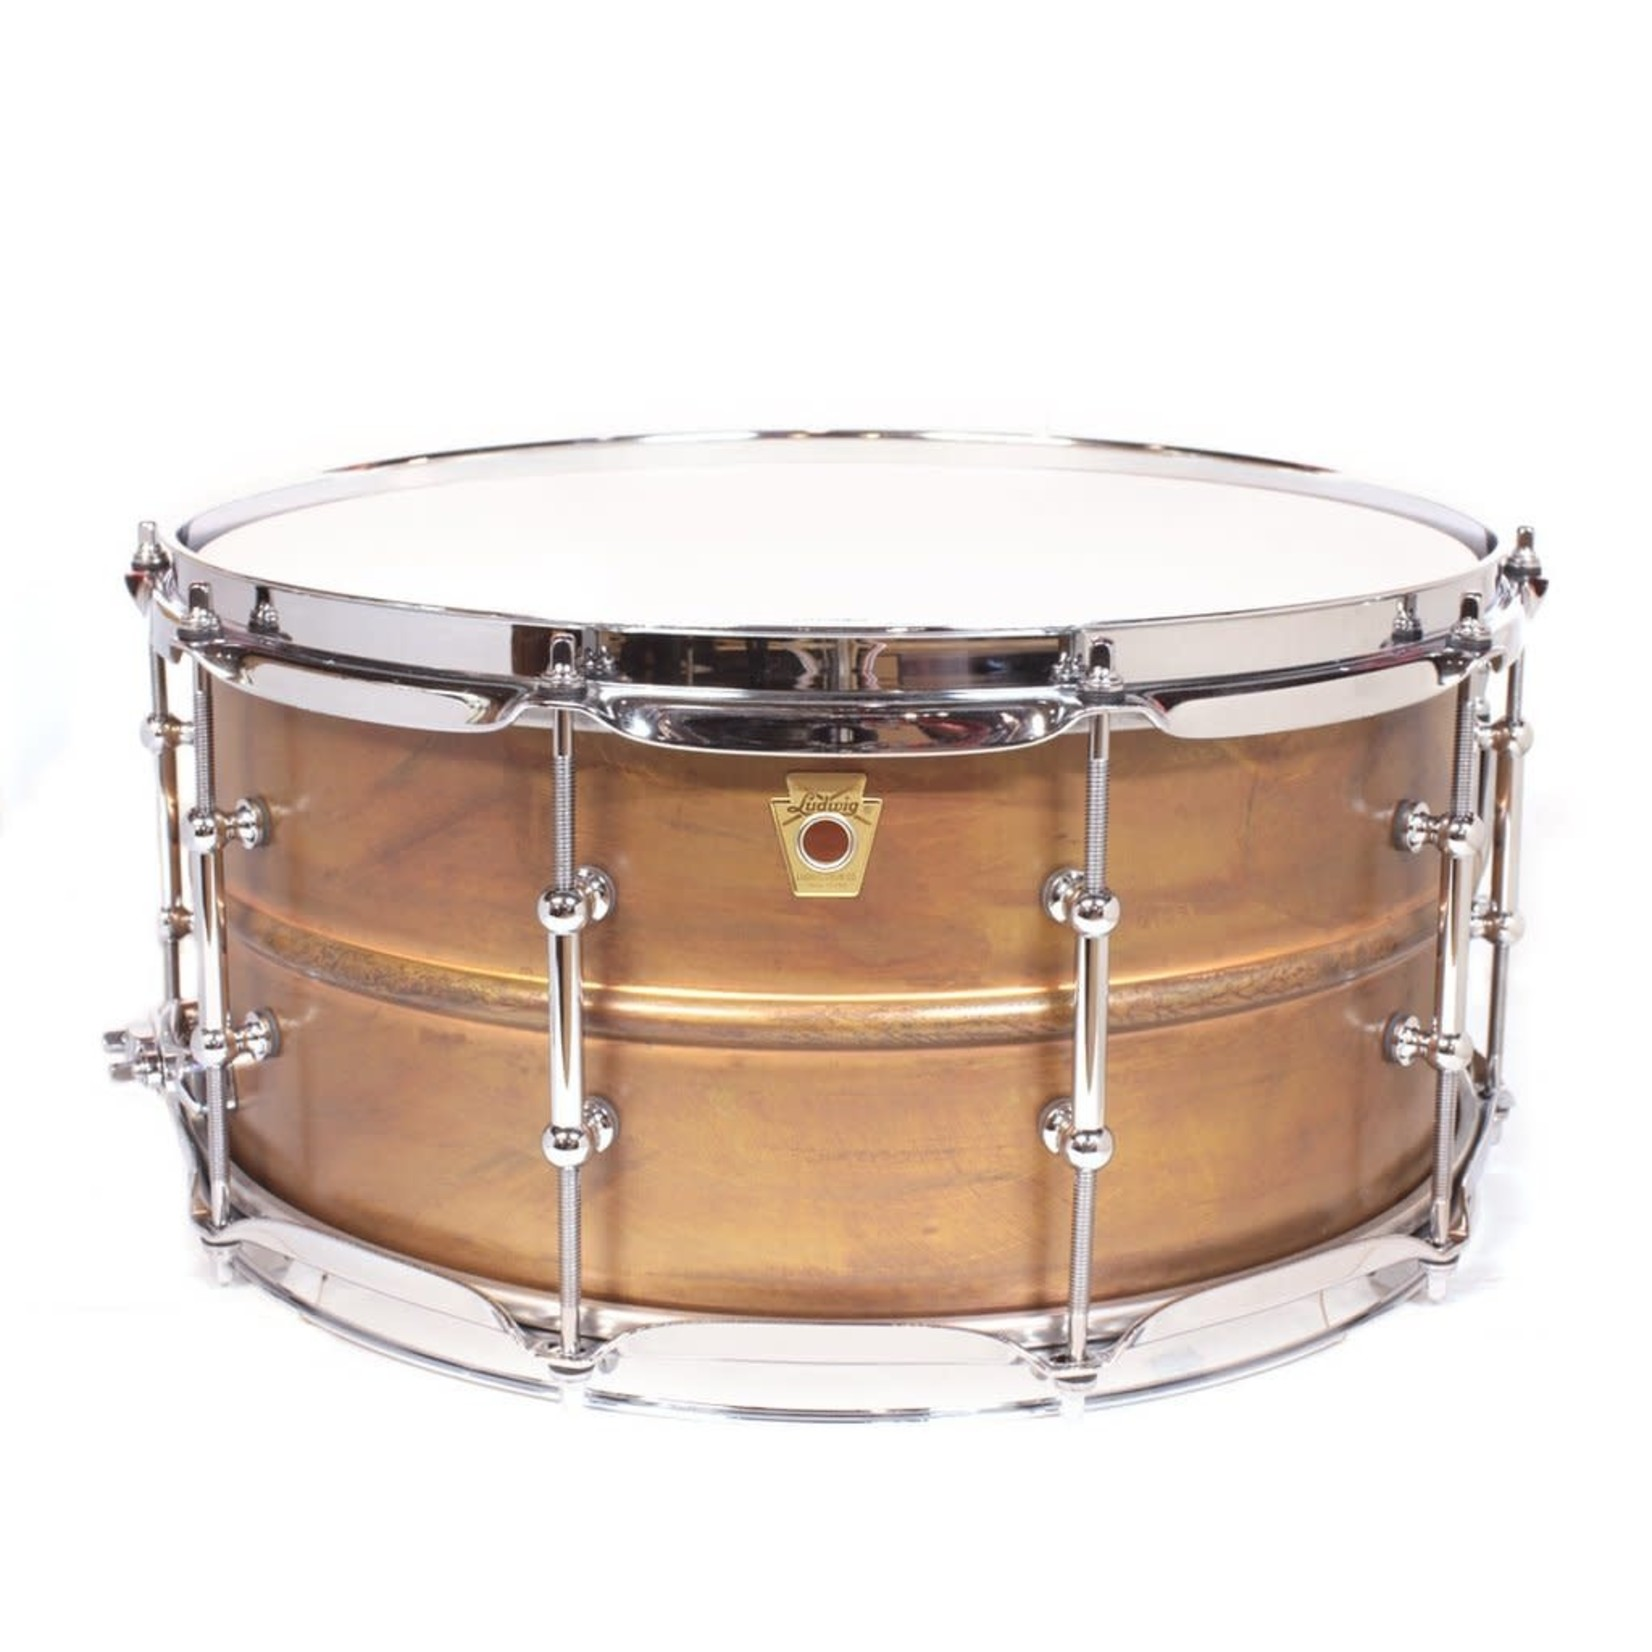 """Ludwig LUDWIG 6.5X14"""" COPPERPHONIC SNARE DRUM WITH TUBE LUGS LC663T"""